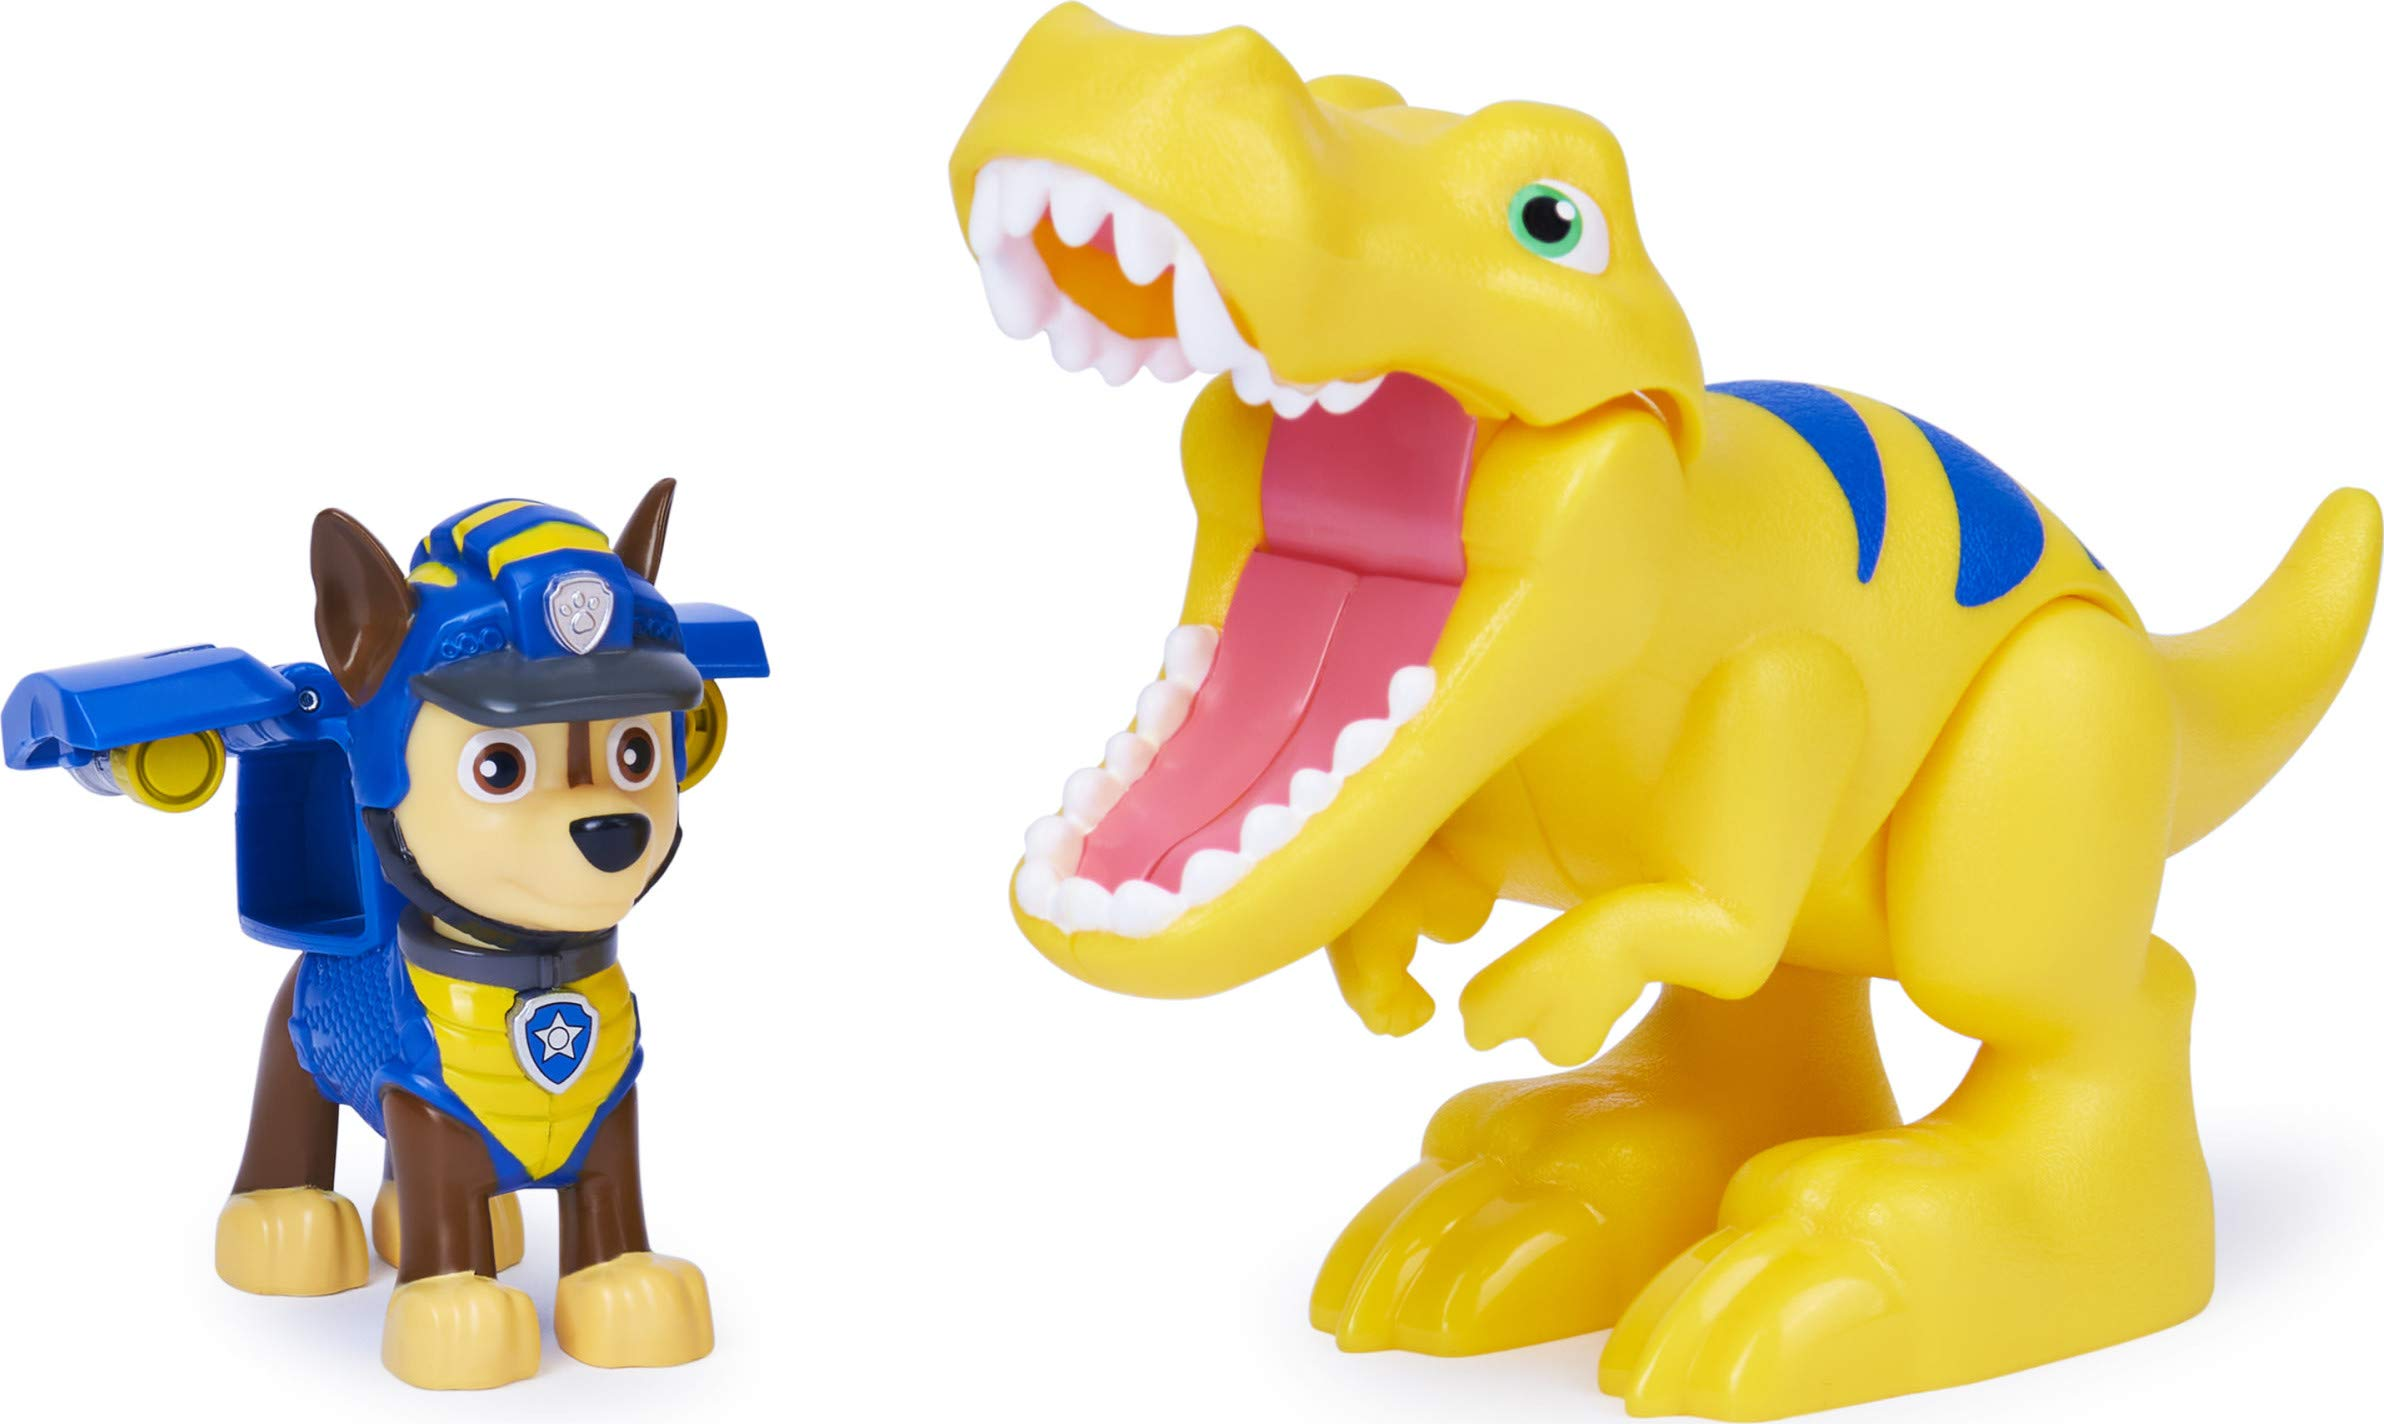 PAW Patrol Dino Rescue Chase and Dinosaur Action Figure Set, for Kids Aged 3 and Up